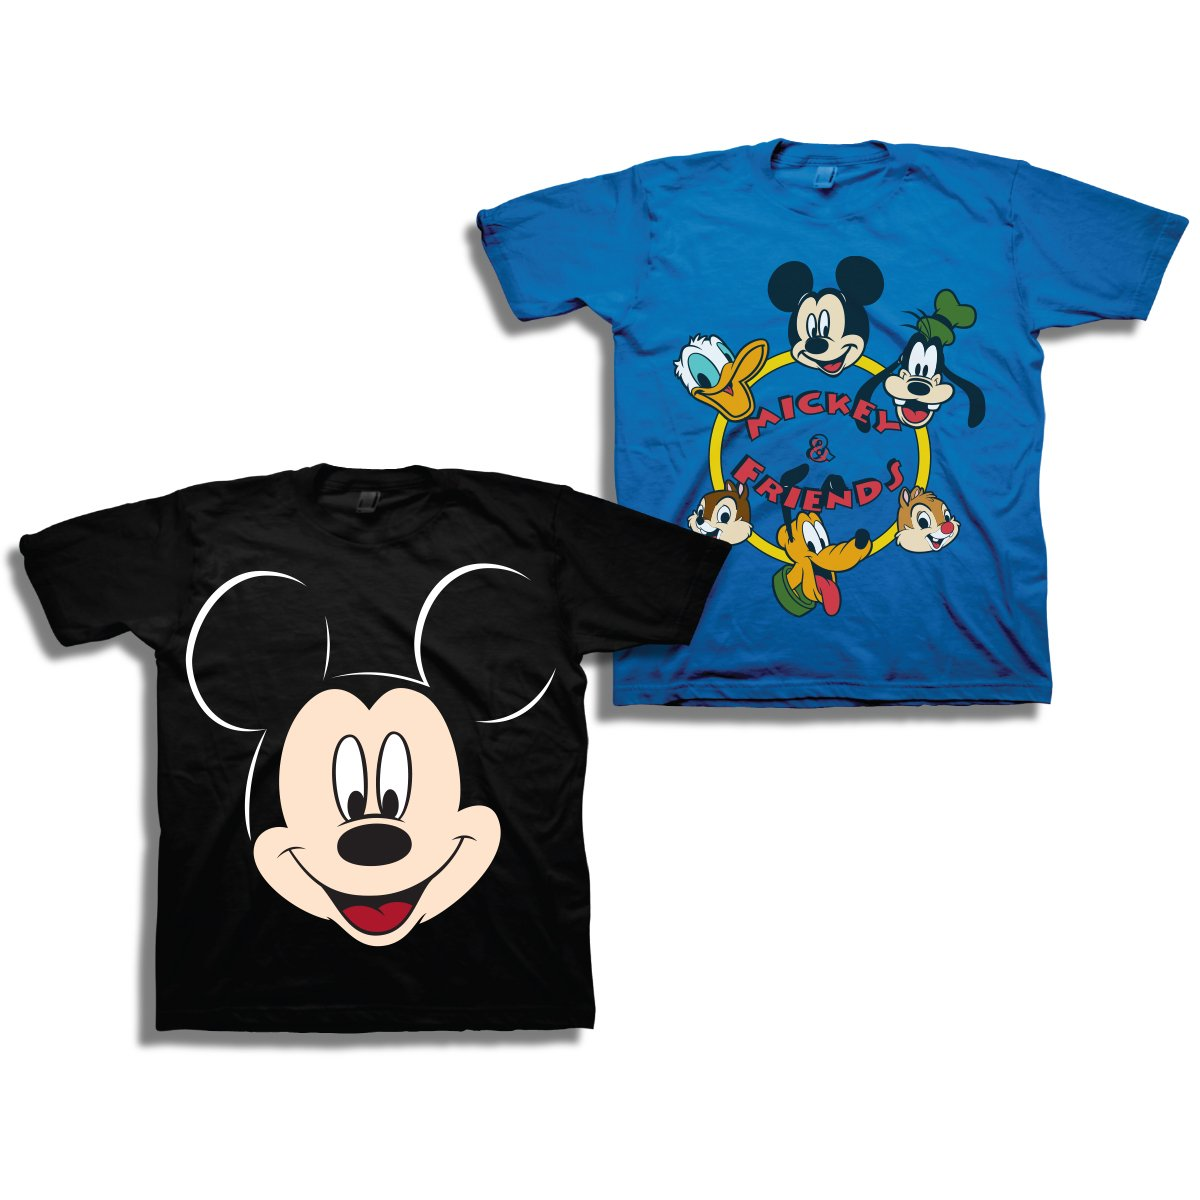 Disney Boys Mickey Mouse Shirt – 2 Pack of Mickey Mouse Tees – Mickey Mouse, Donald Duck, Goofy, Pluto, and Minnie Mouse (Blue/Black, 3T)